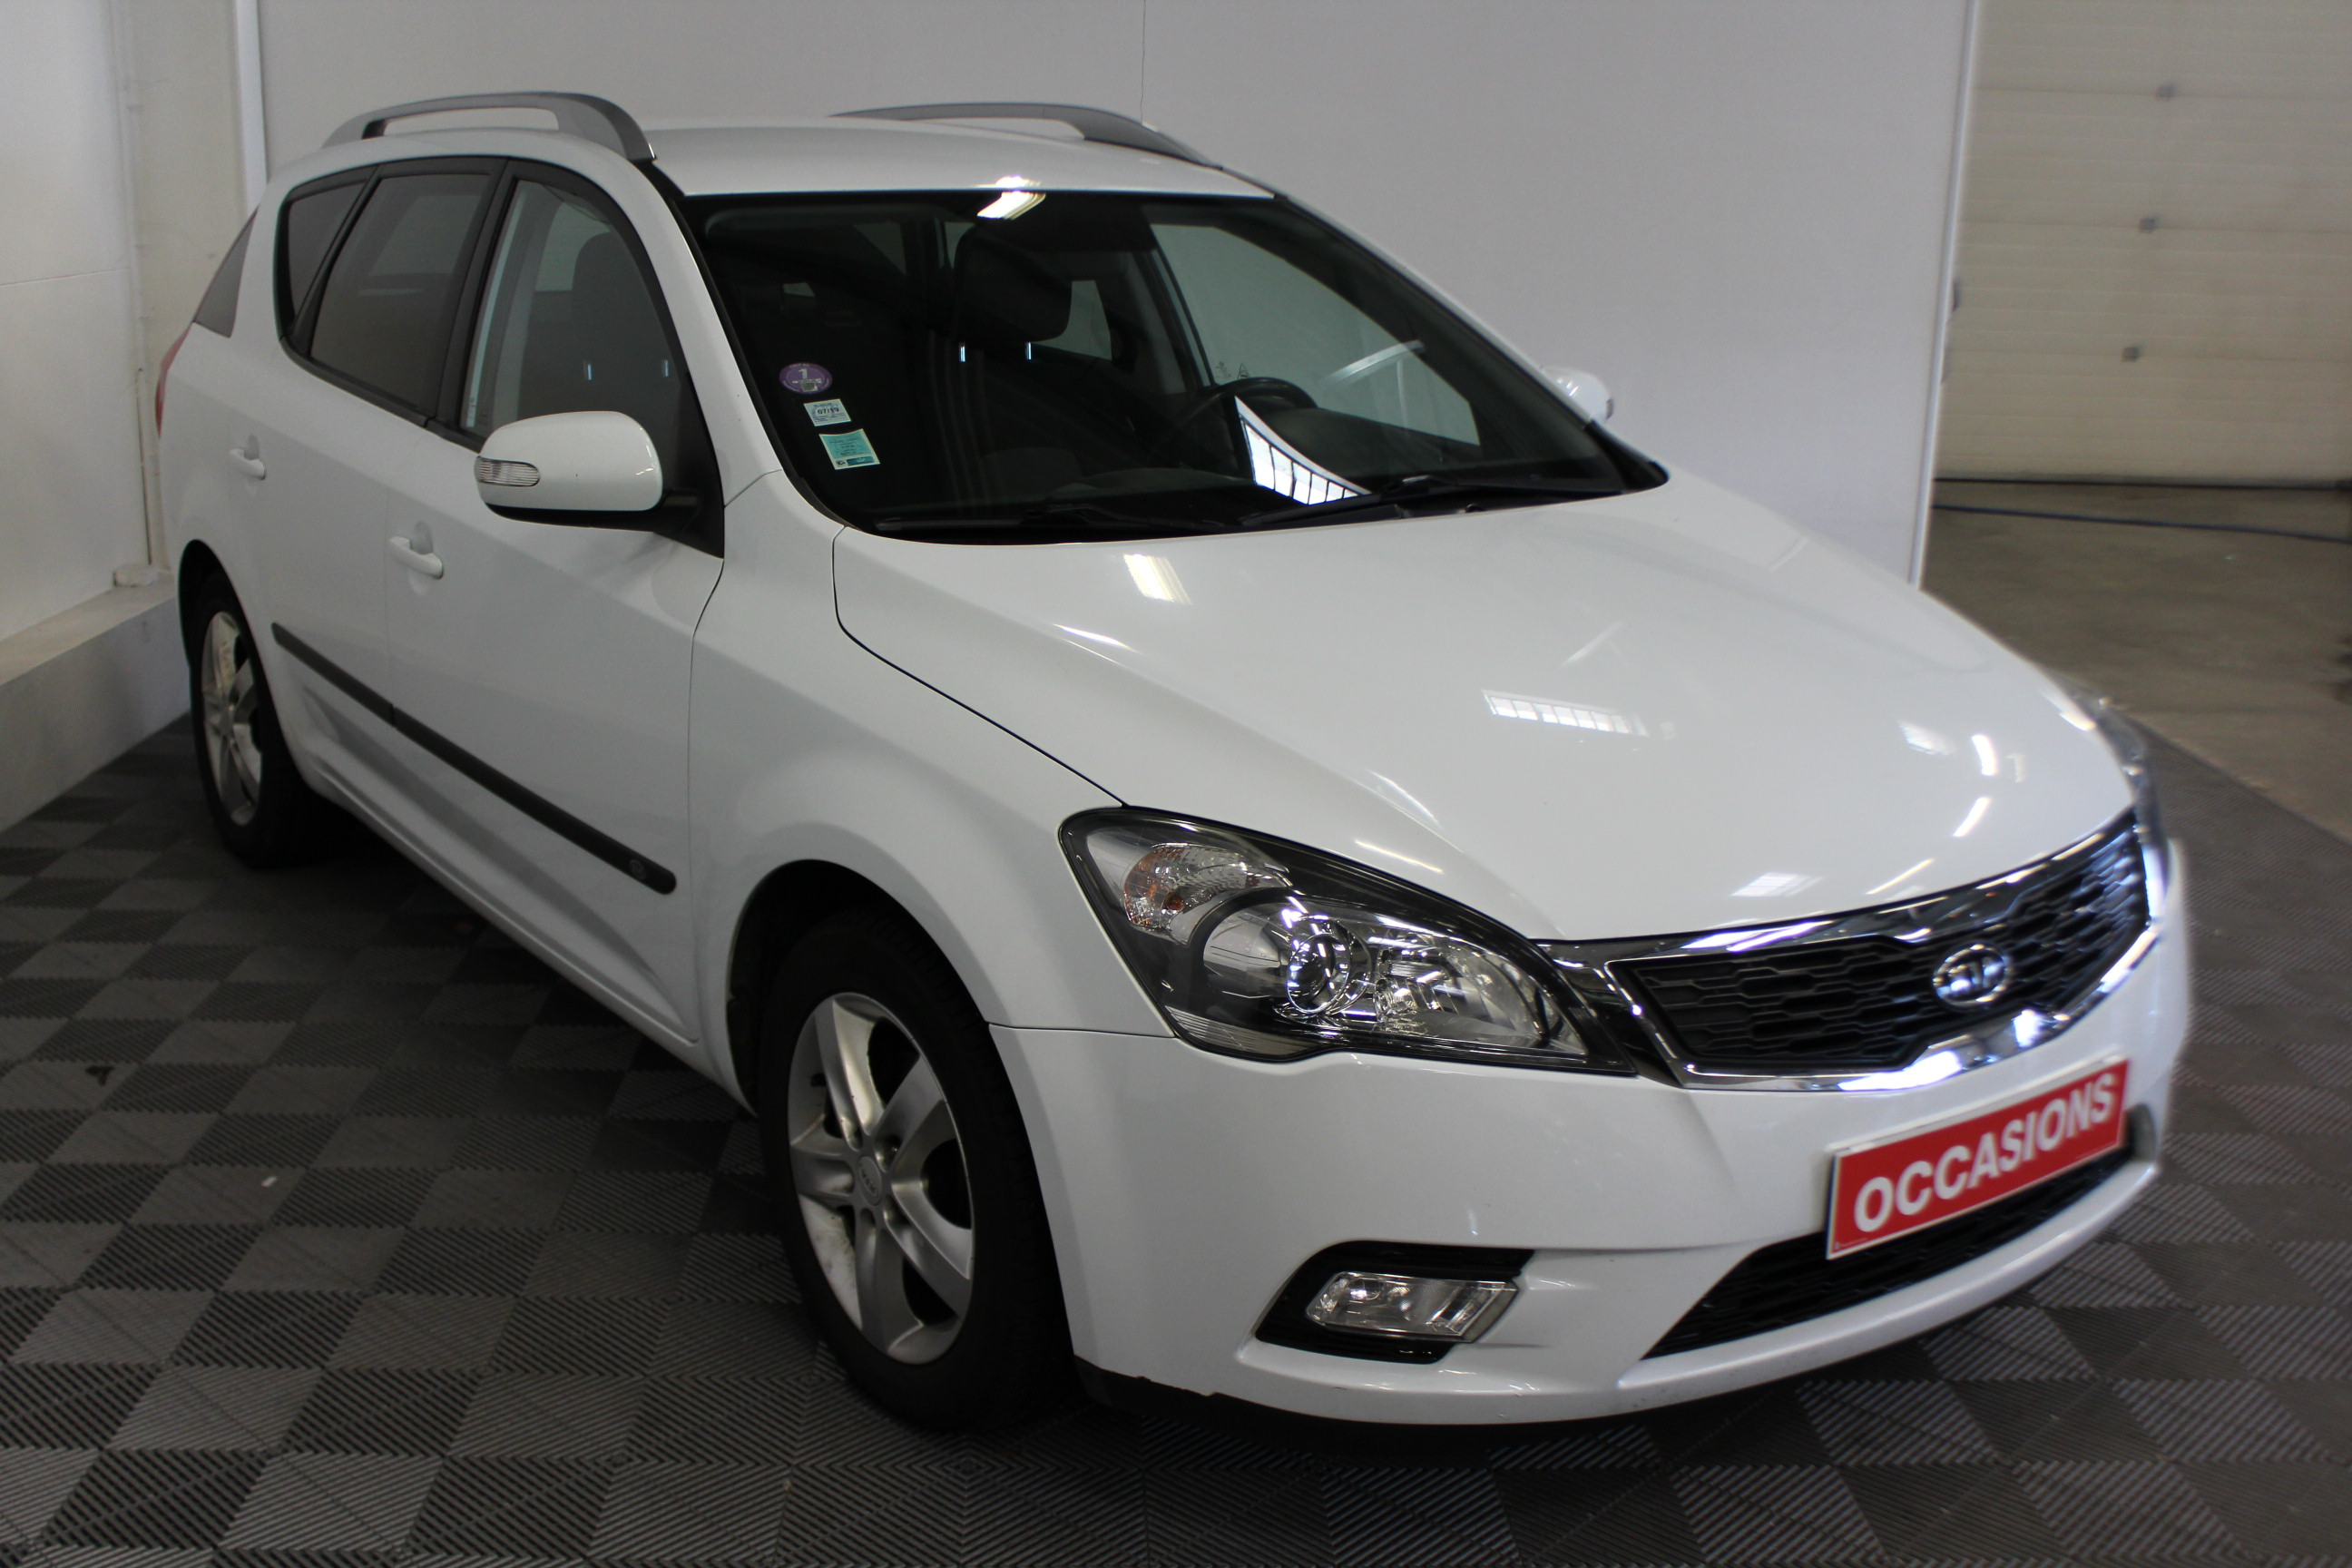 KIA CEE'D SW 2011 à 5400 € - Photo n°3